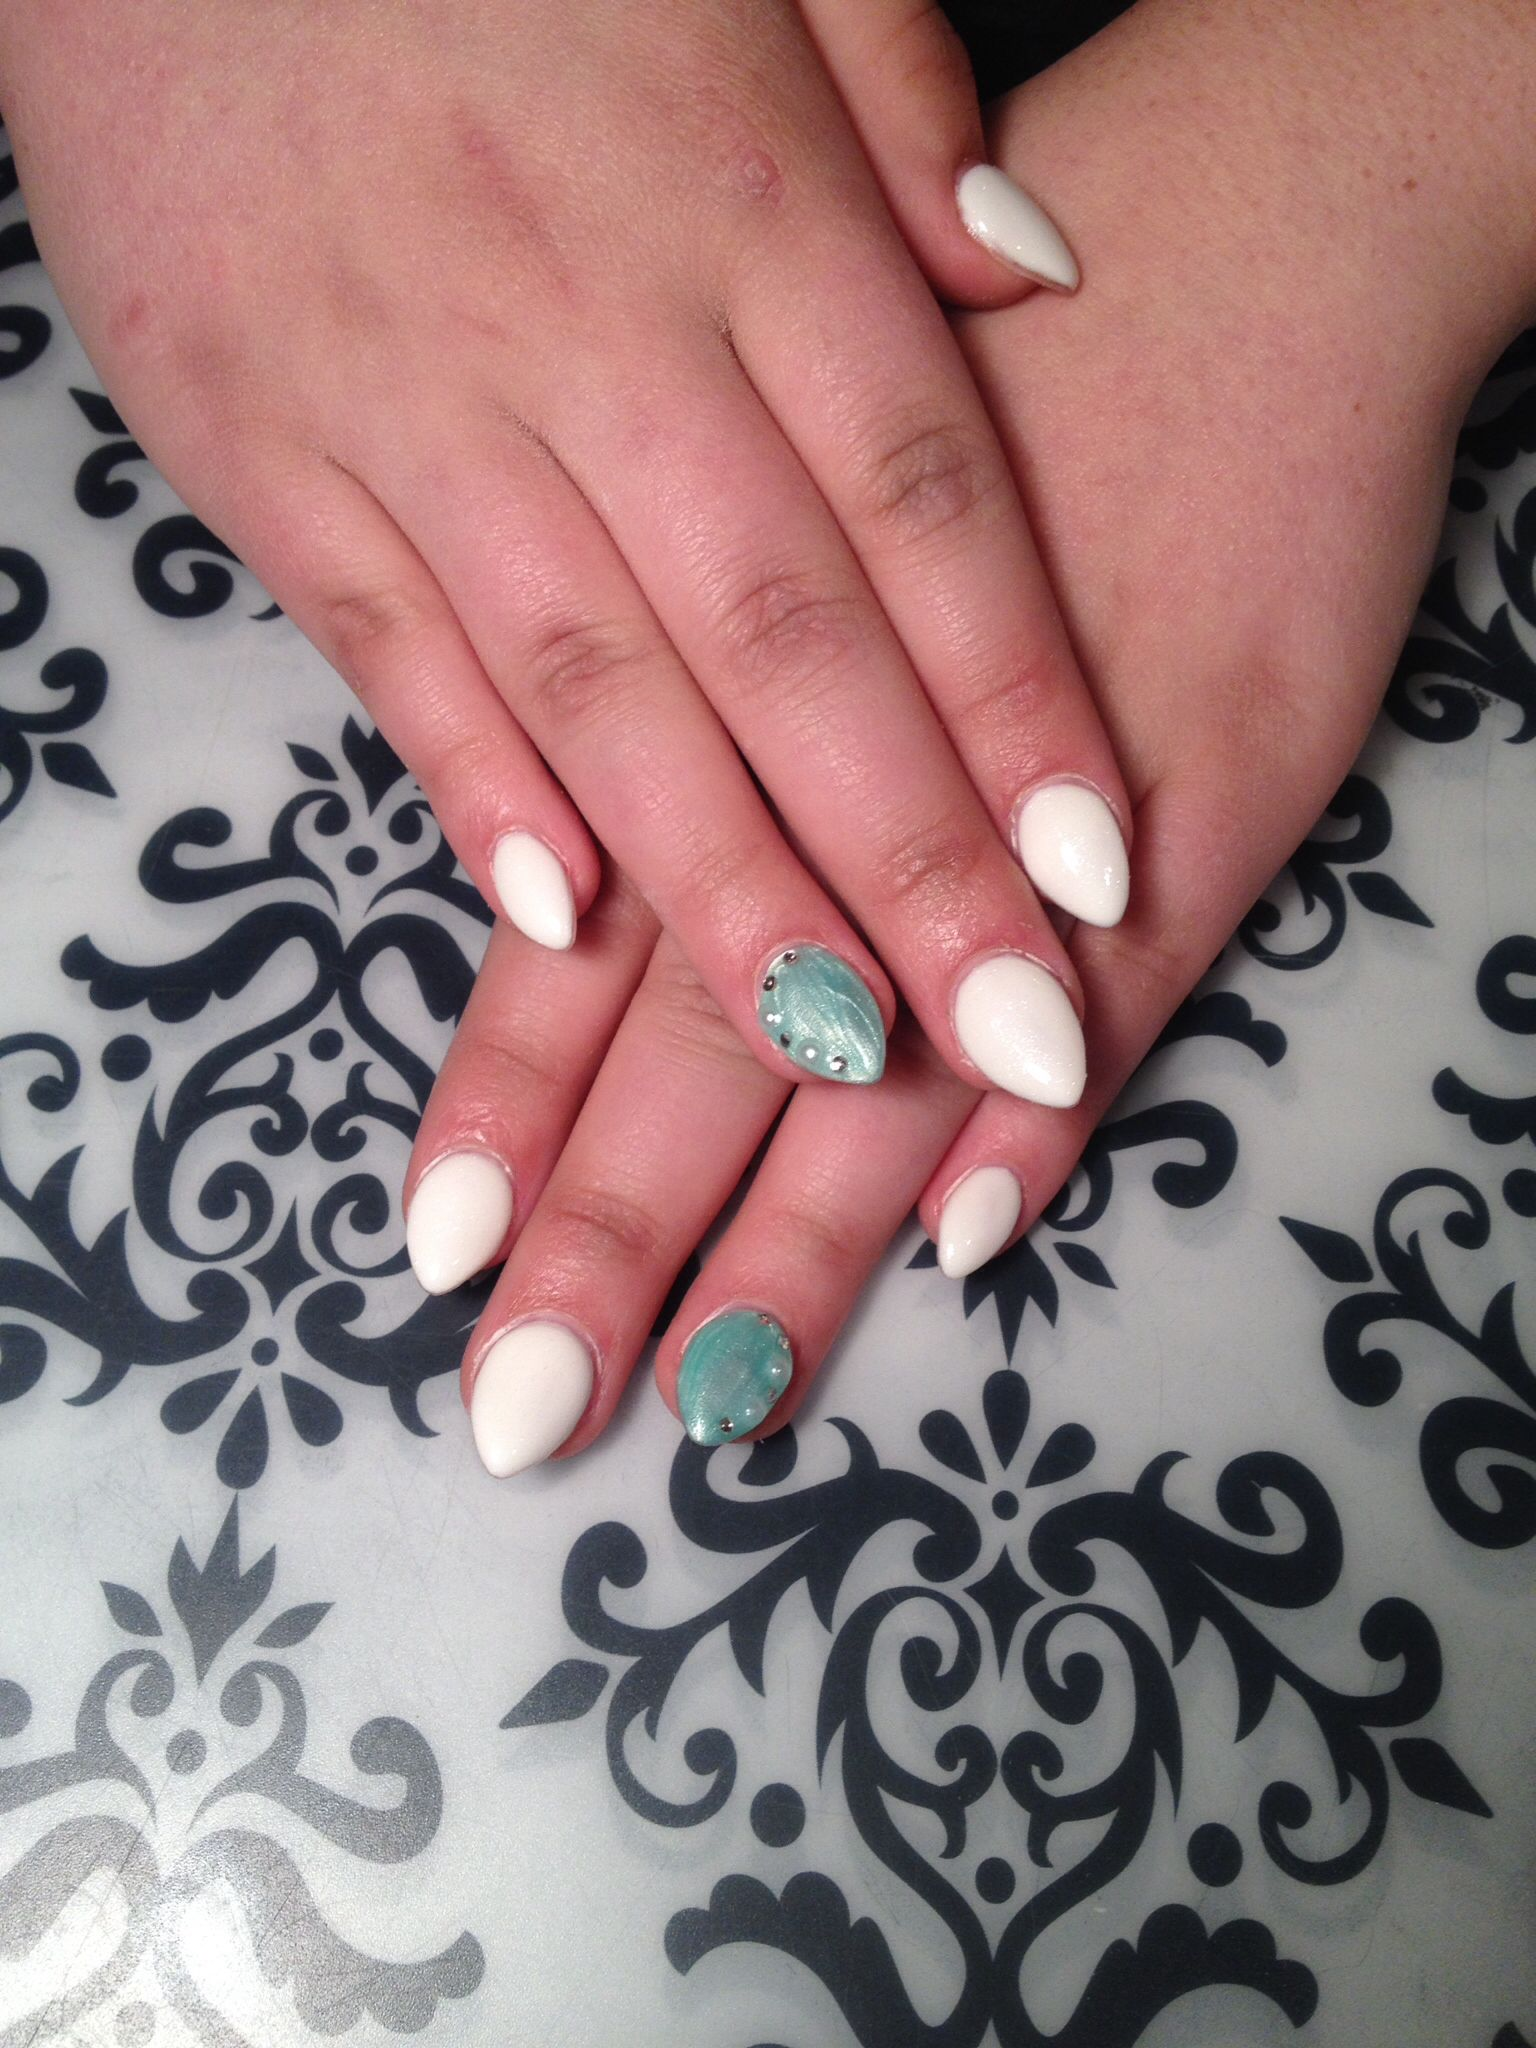 Lcn Gel Nails White And Mint Pearl Gem Bling Almond Nails Gel Nails Nail Envy